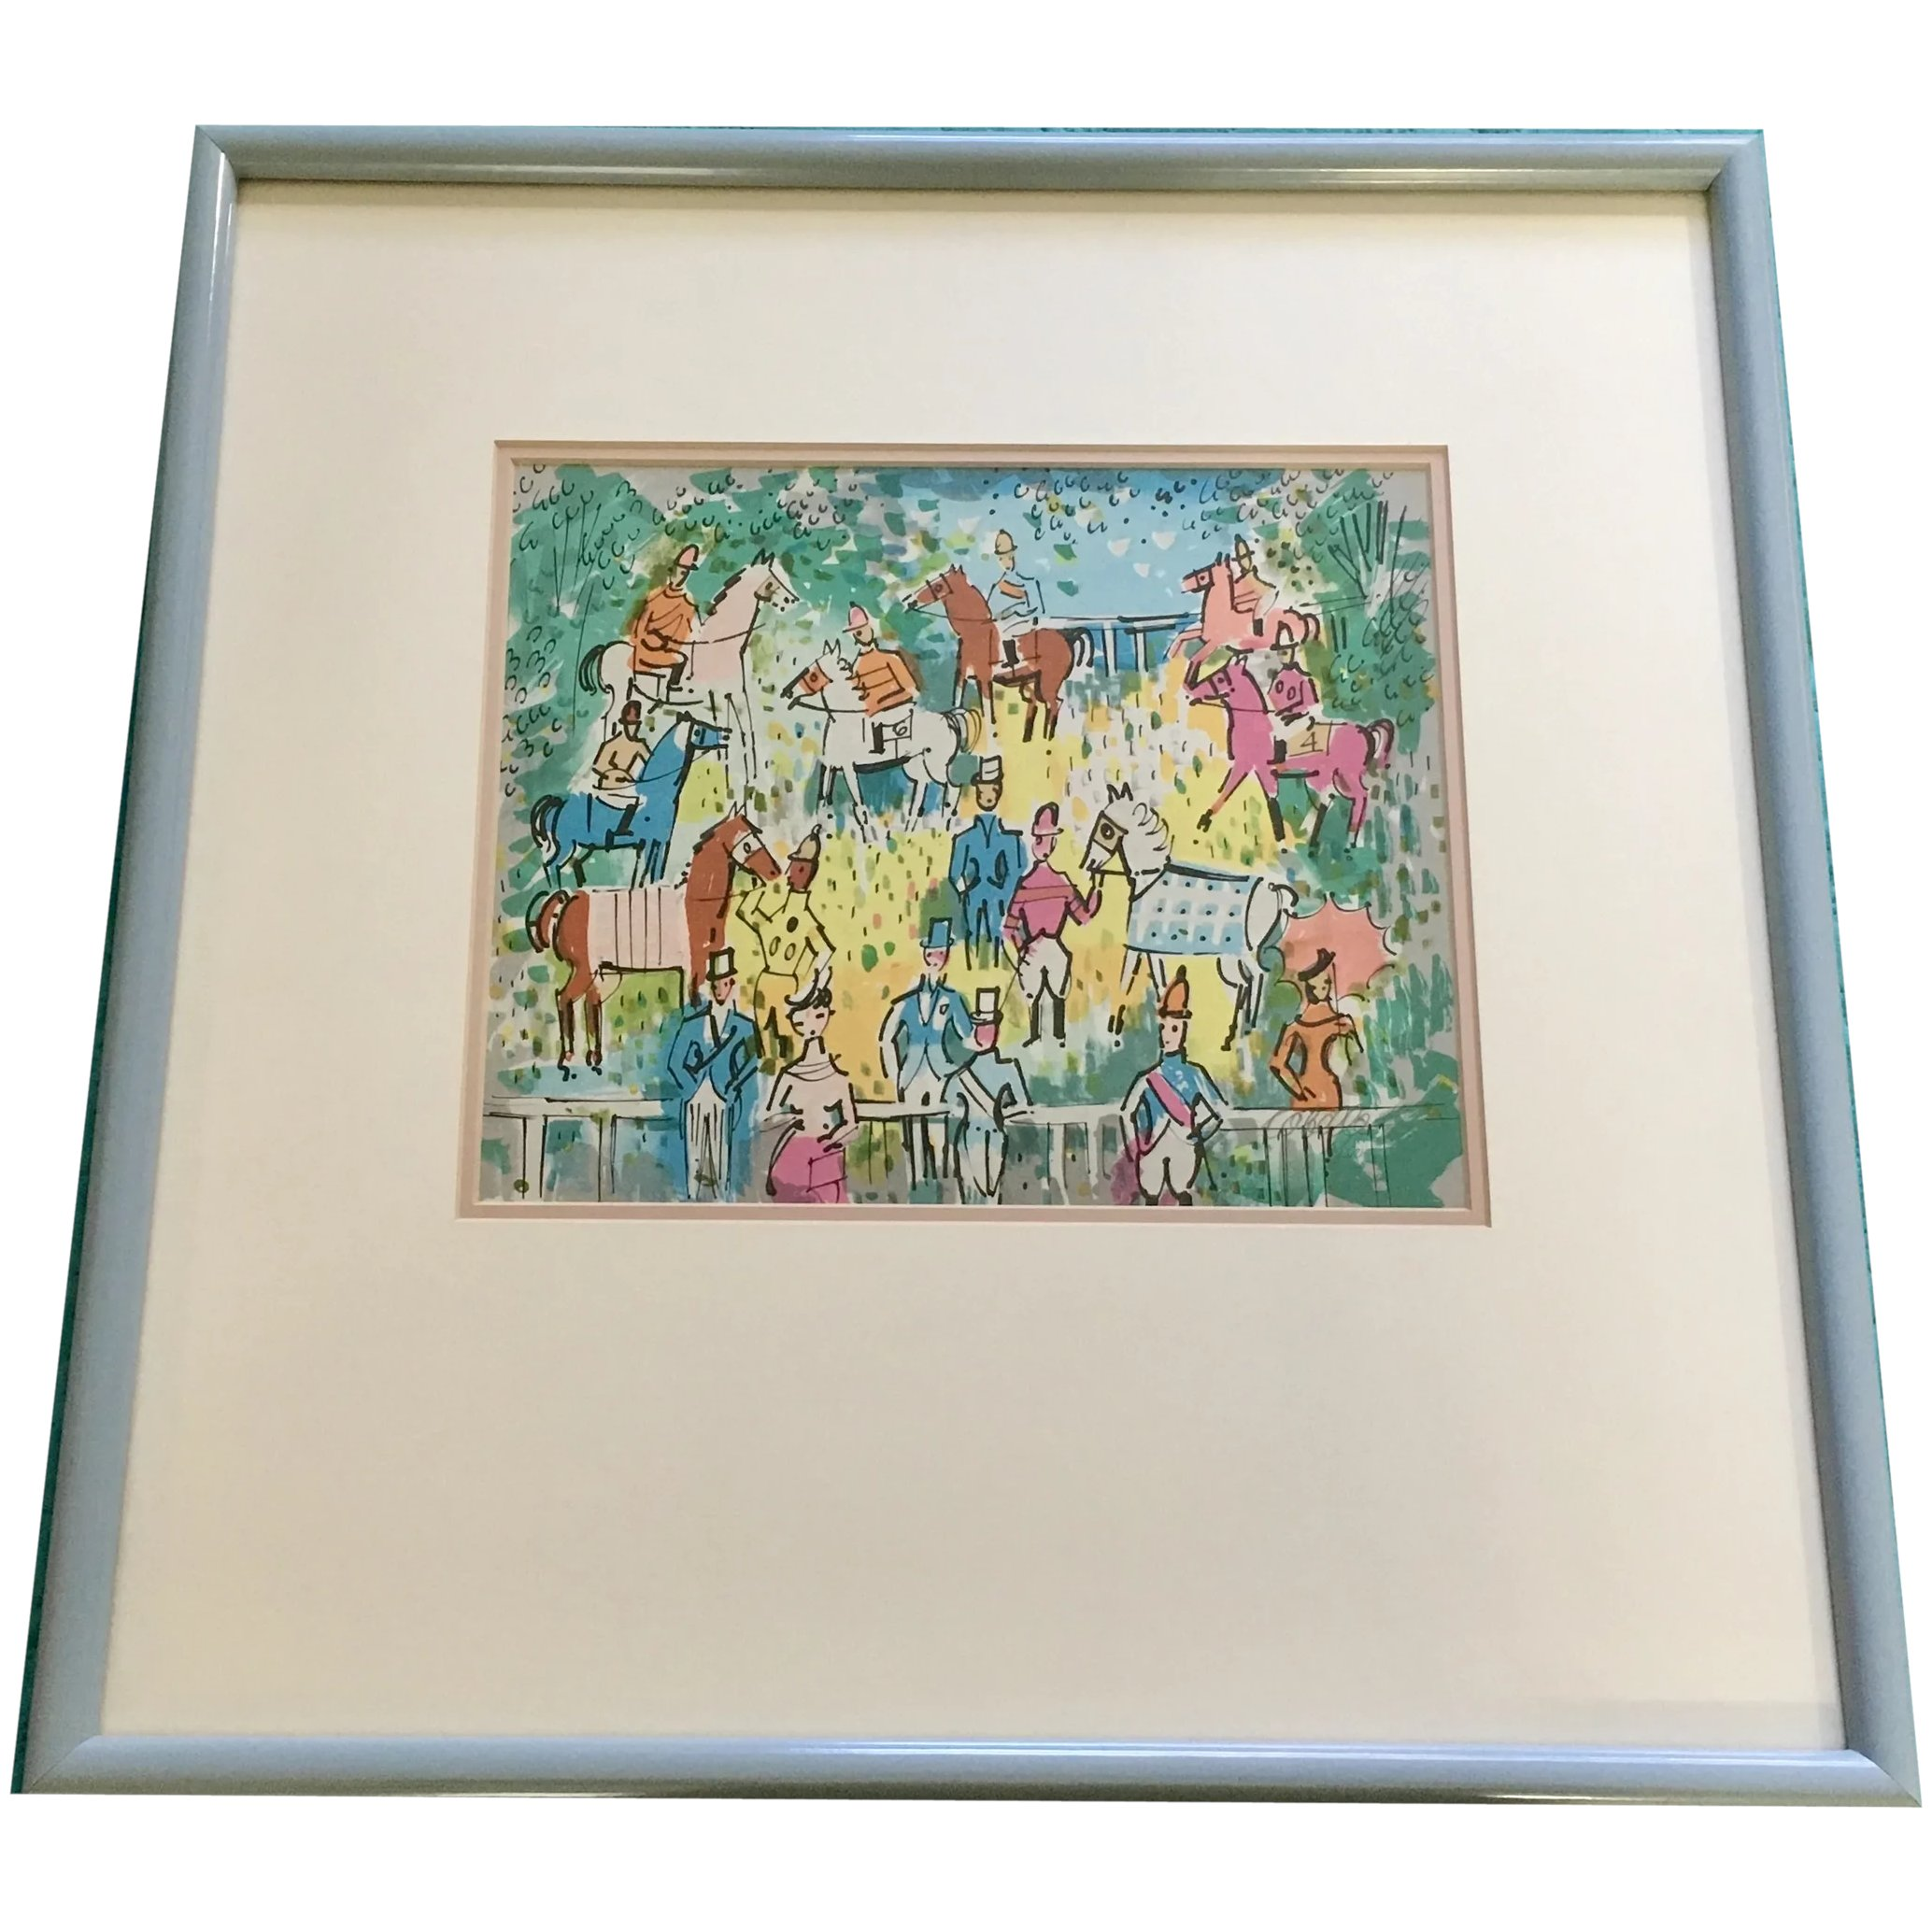 Horse wrider The paper size: 35 W x 23 H Never been framed. unframed Original Lithograph by Charles Cobelle borderless sheet